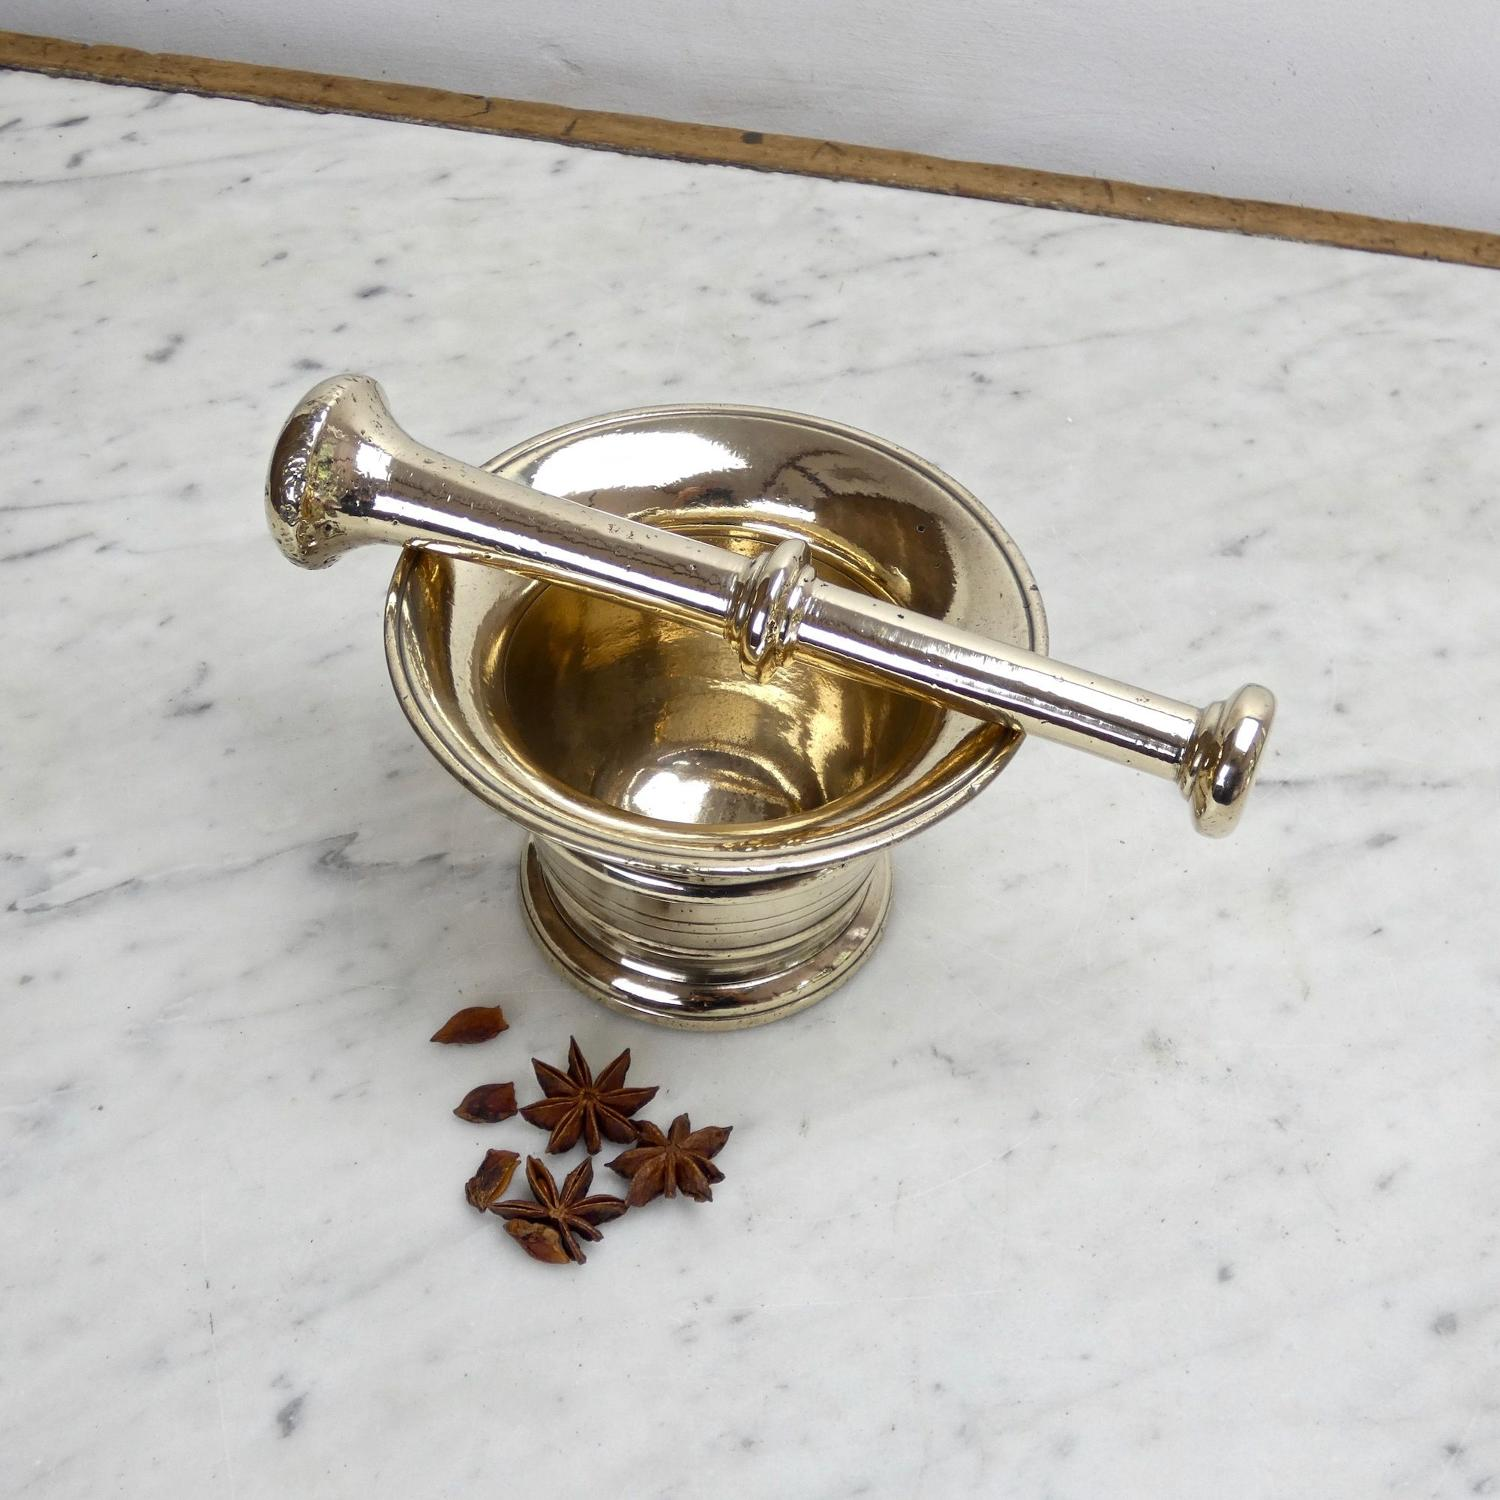 Early 19th c. brass mortar and pestle